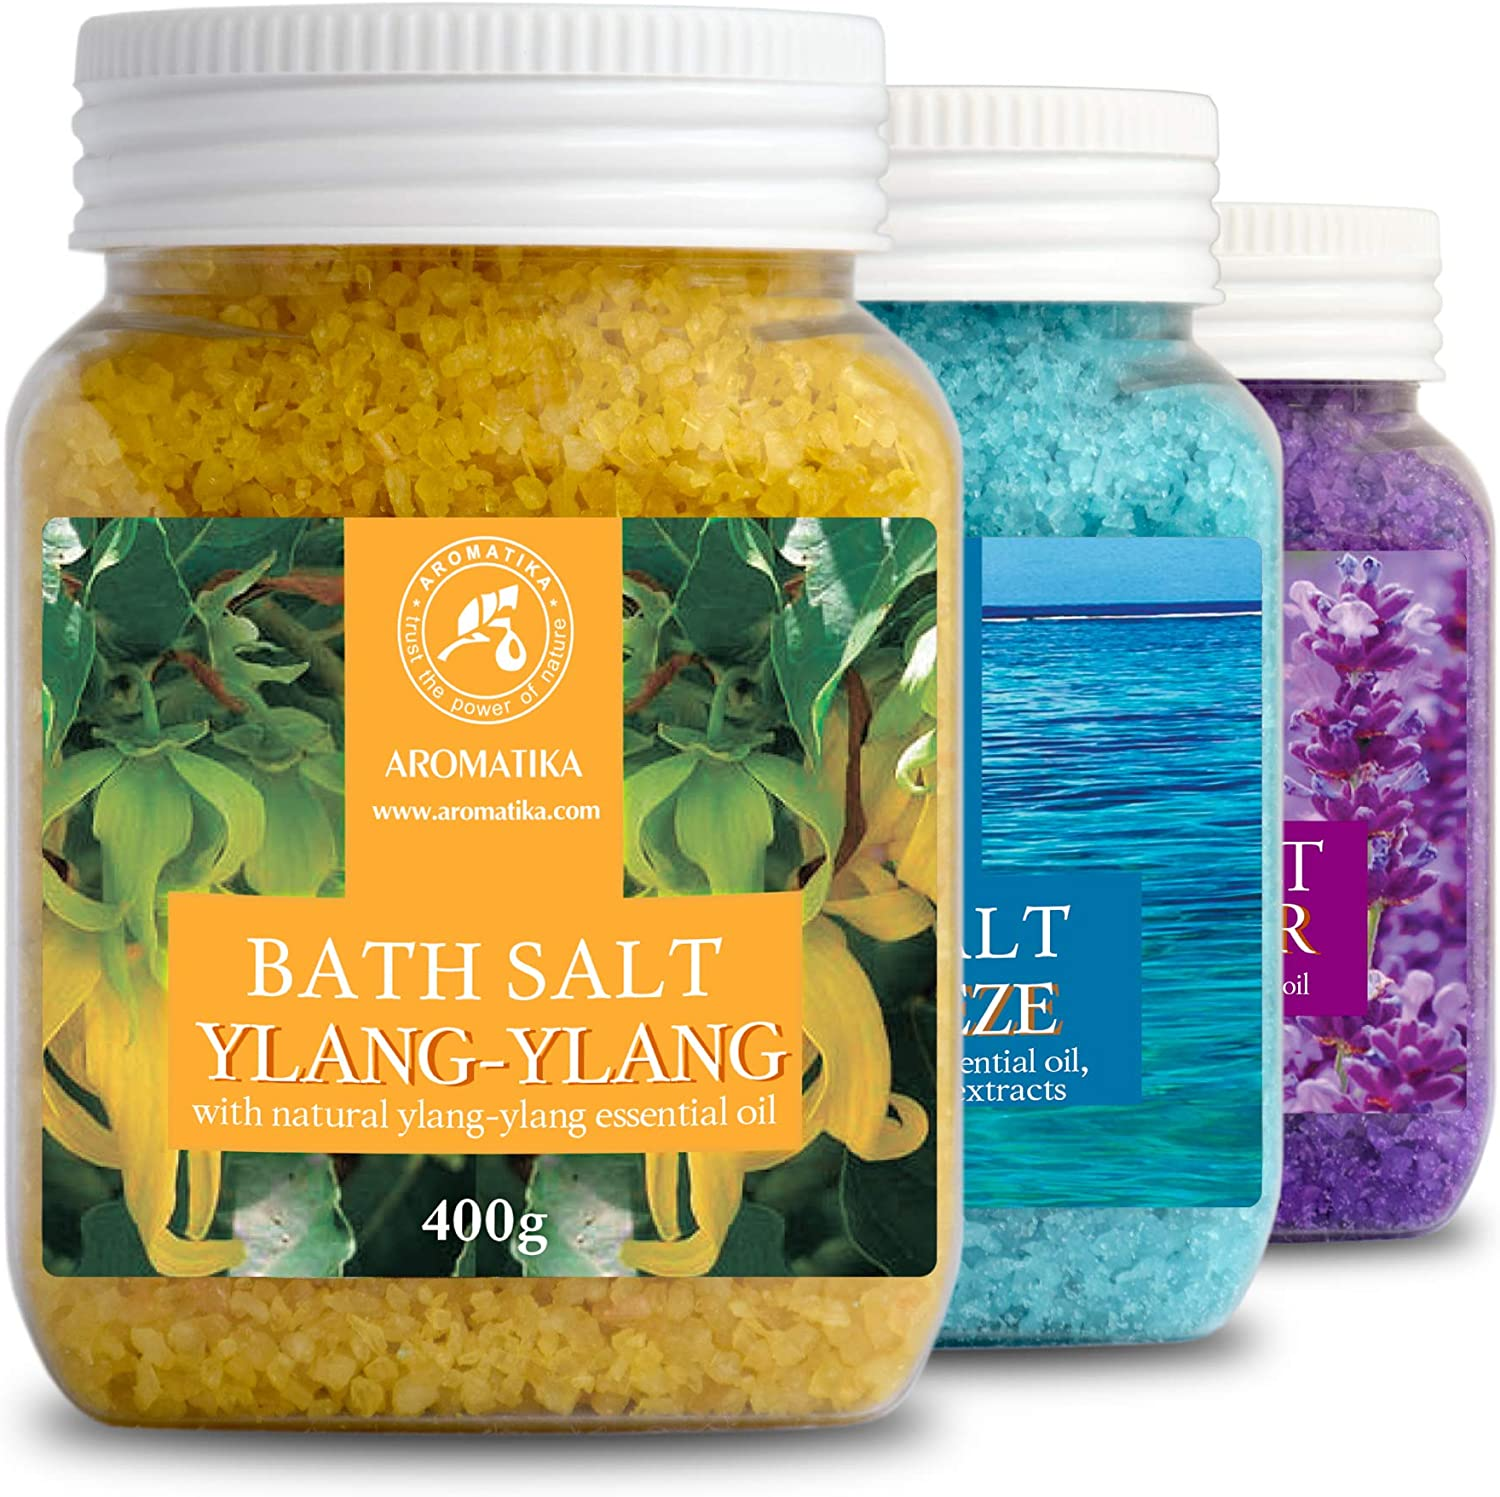 Bath Salts Set 42oz - Lavender - Sea Breeze - Ylang-Ylang - 100% Natural Essential Oil - Best for Good Sleep - Stress Relief - Bathing - Body Care - Beauty - Relaxation - Spa